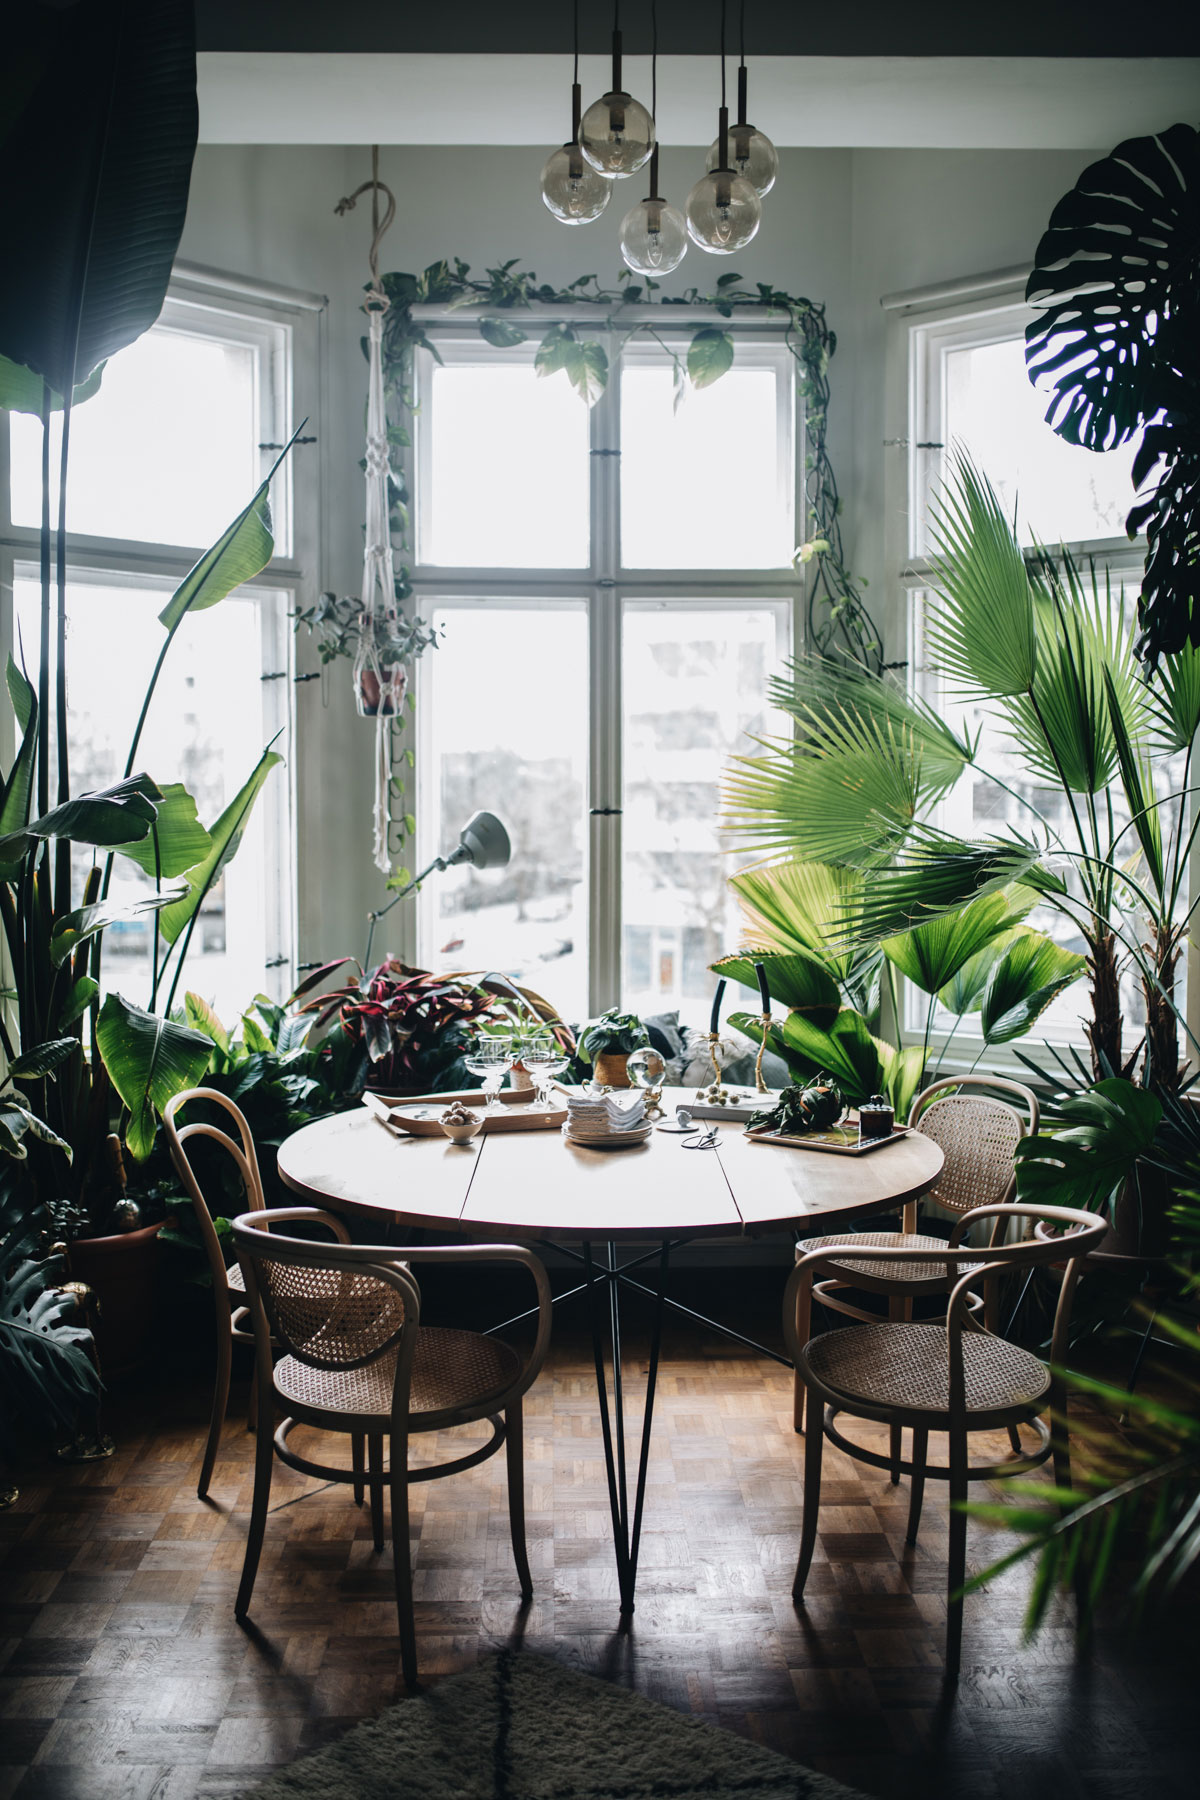 PLANT TRIBELIVING HAPPILY EVER AFTER WITH PLANTSBy Igor Josifovic & Judith de Graaff Photo: The home of Tim Labenda In Berlin.Photography by Jules Villbrandt for Urban Jungle Bloggers.